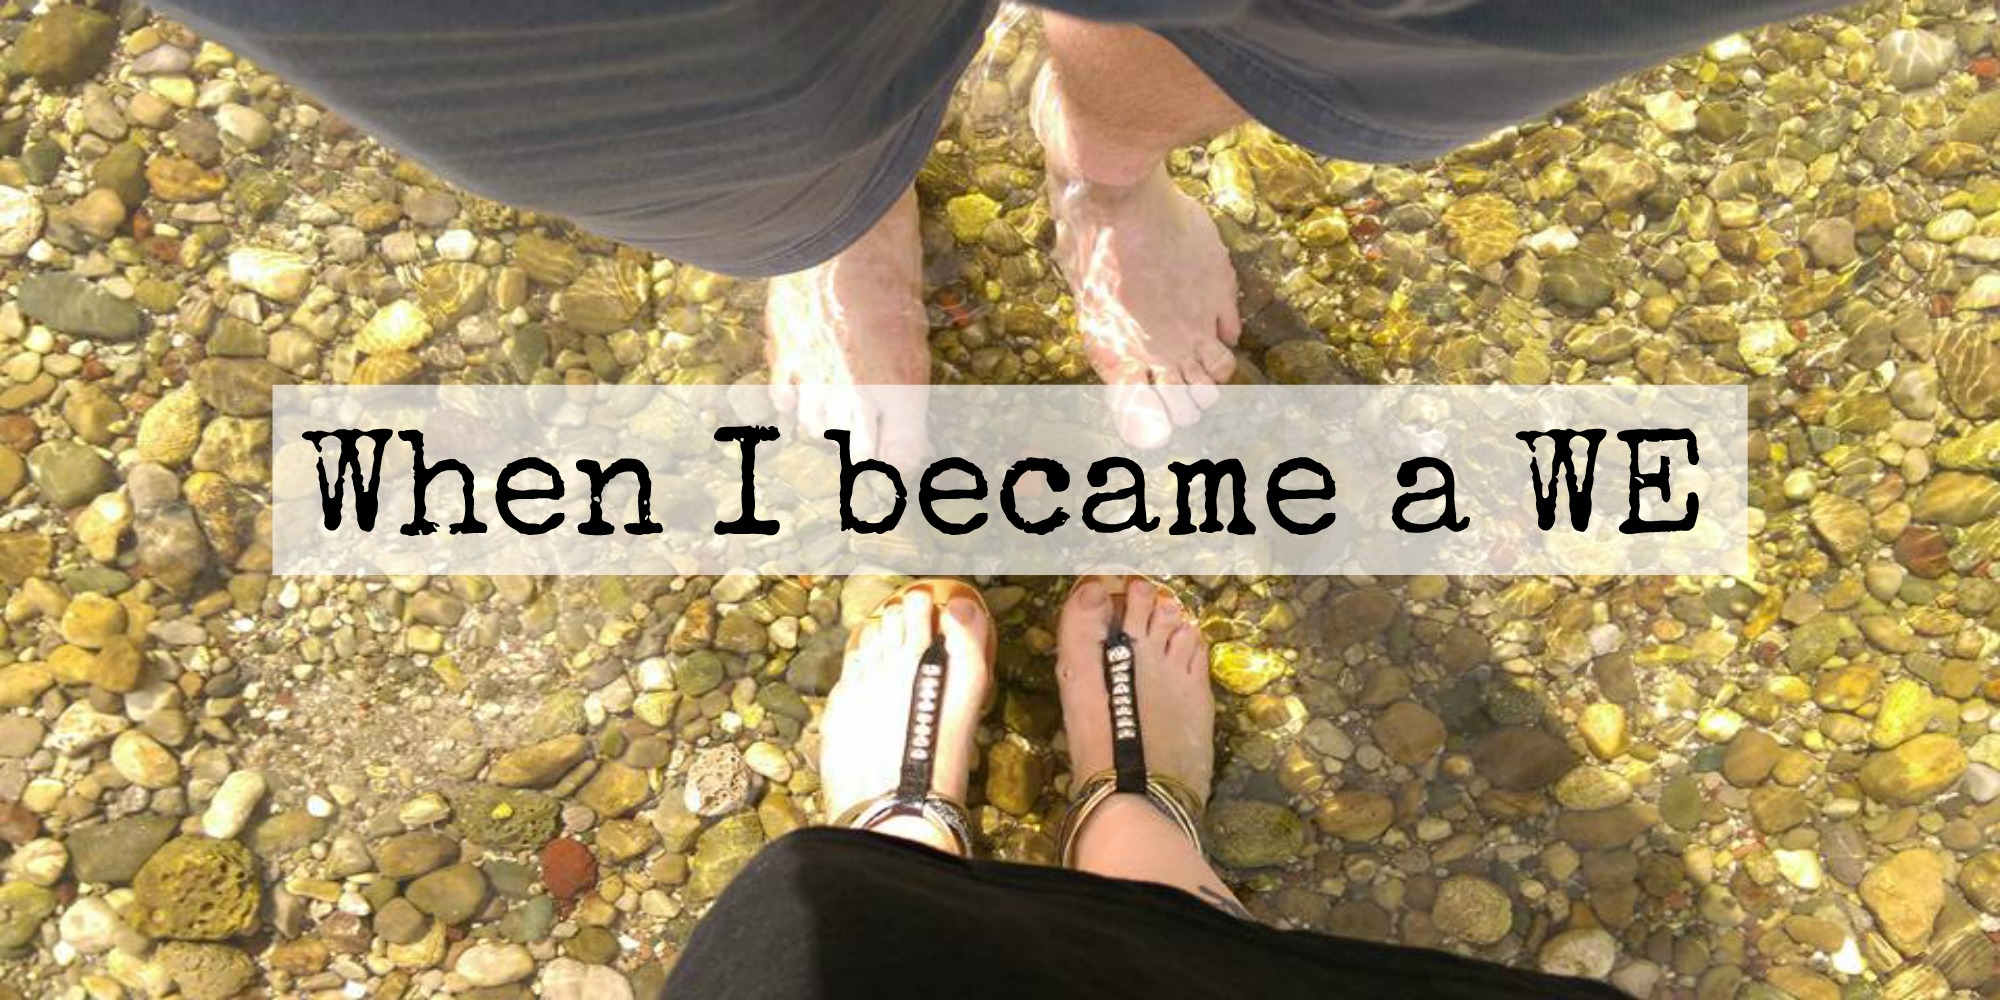 When I became a we